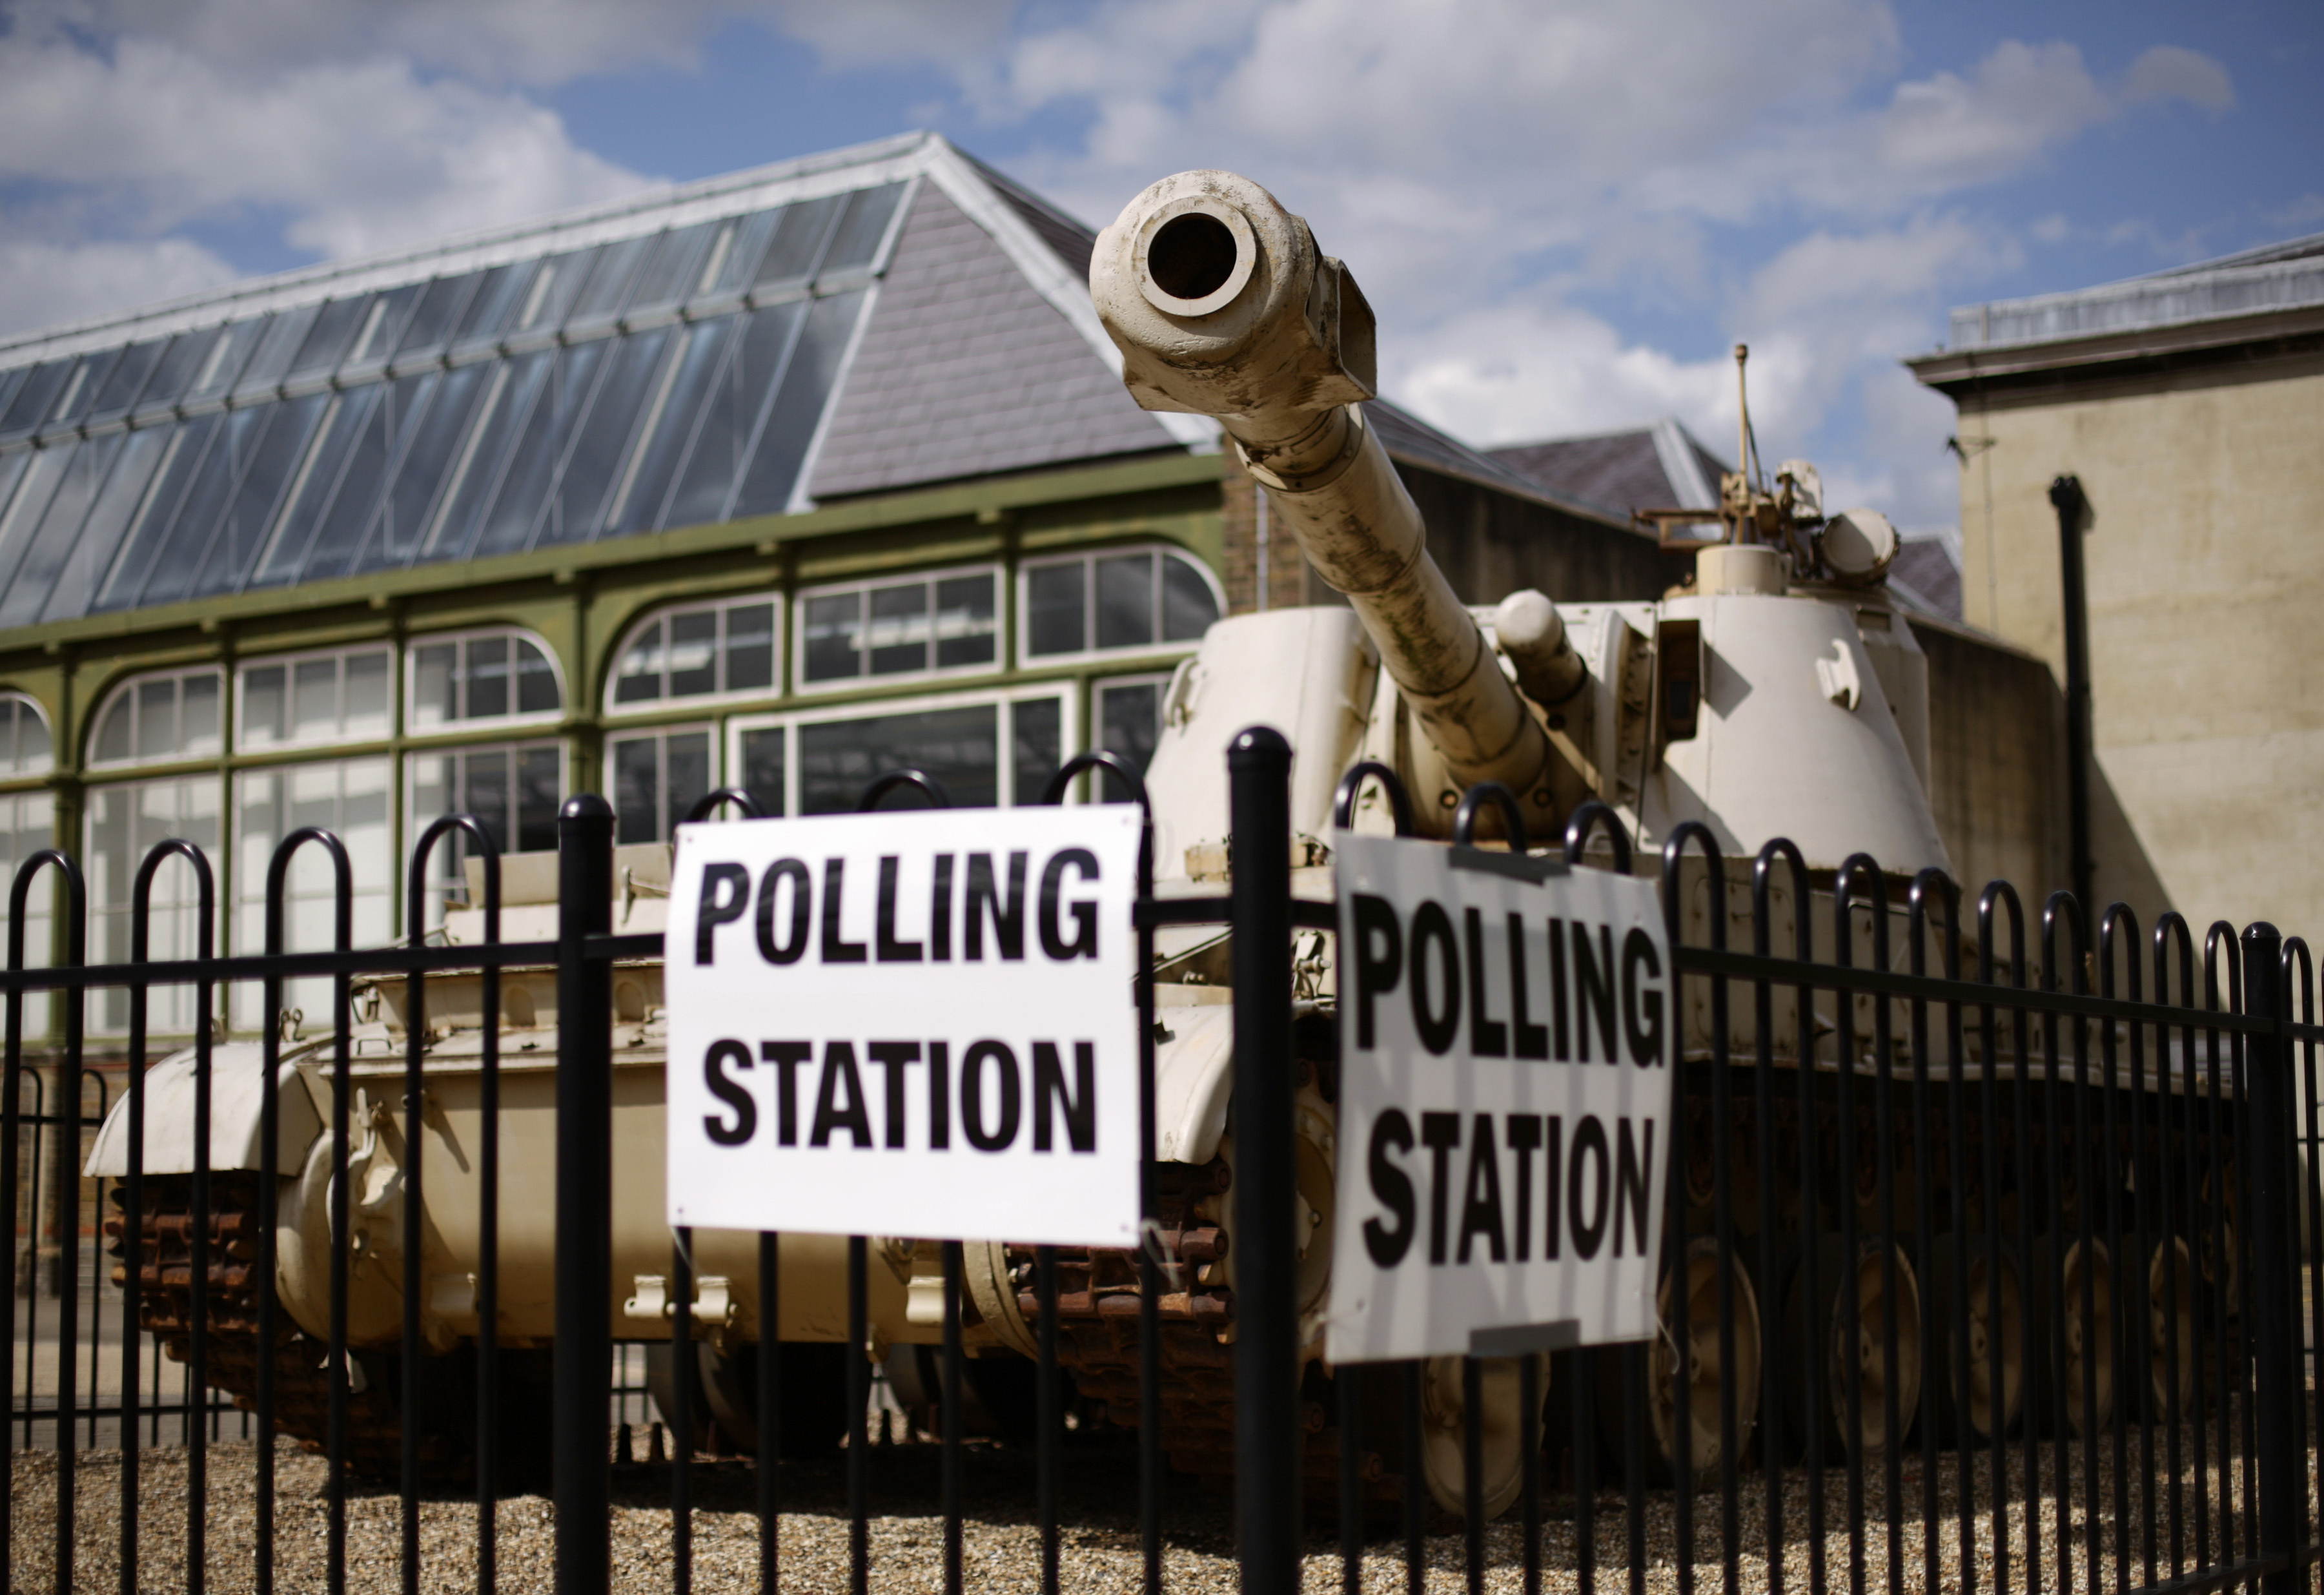 A polling station at the Royal Artillery Museum in Woolwich, east London, on the day of the General Election on May 7, 2015.